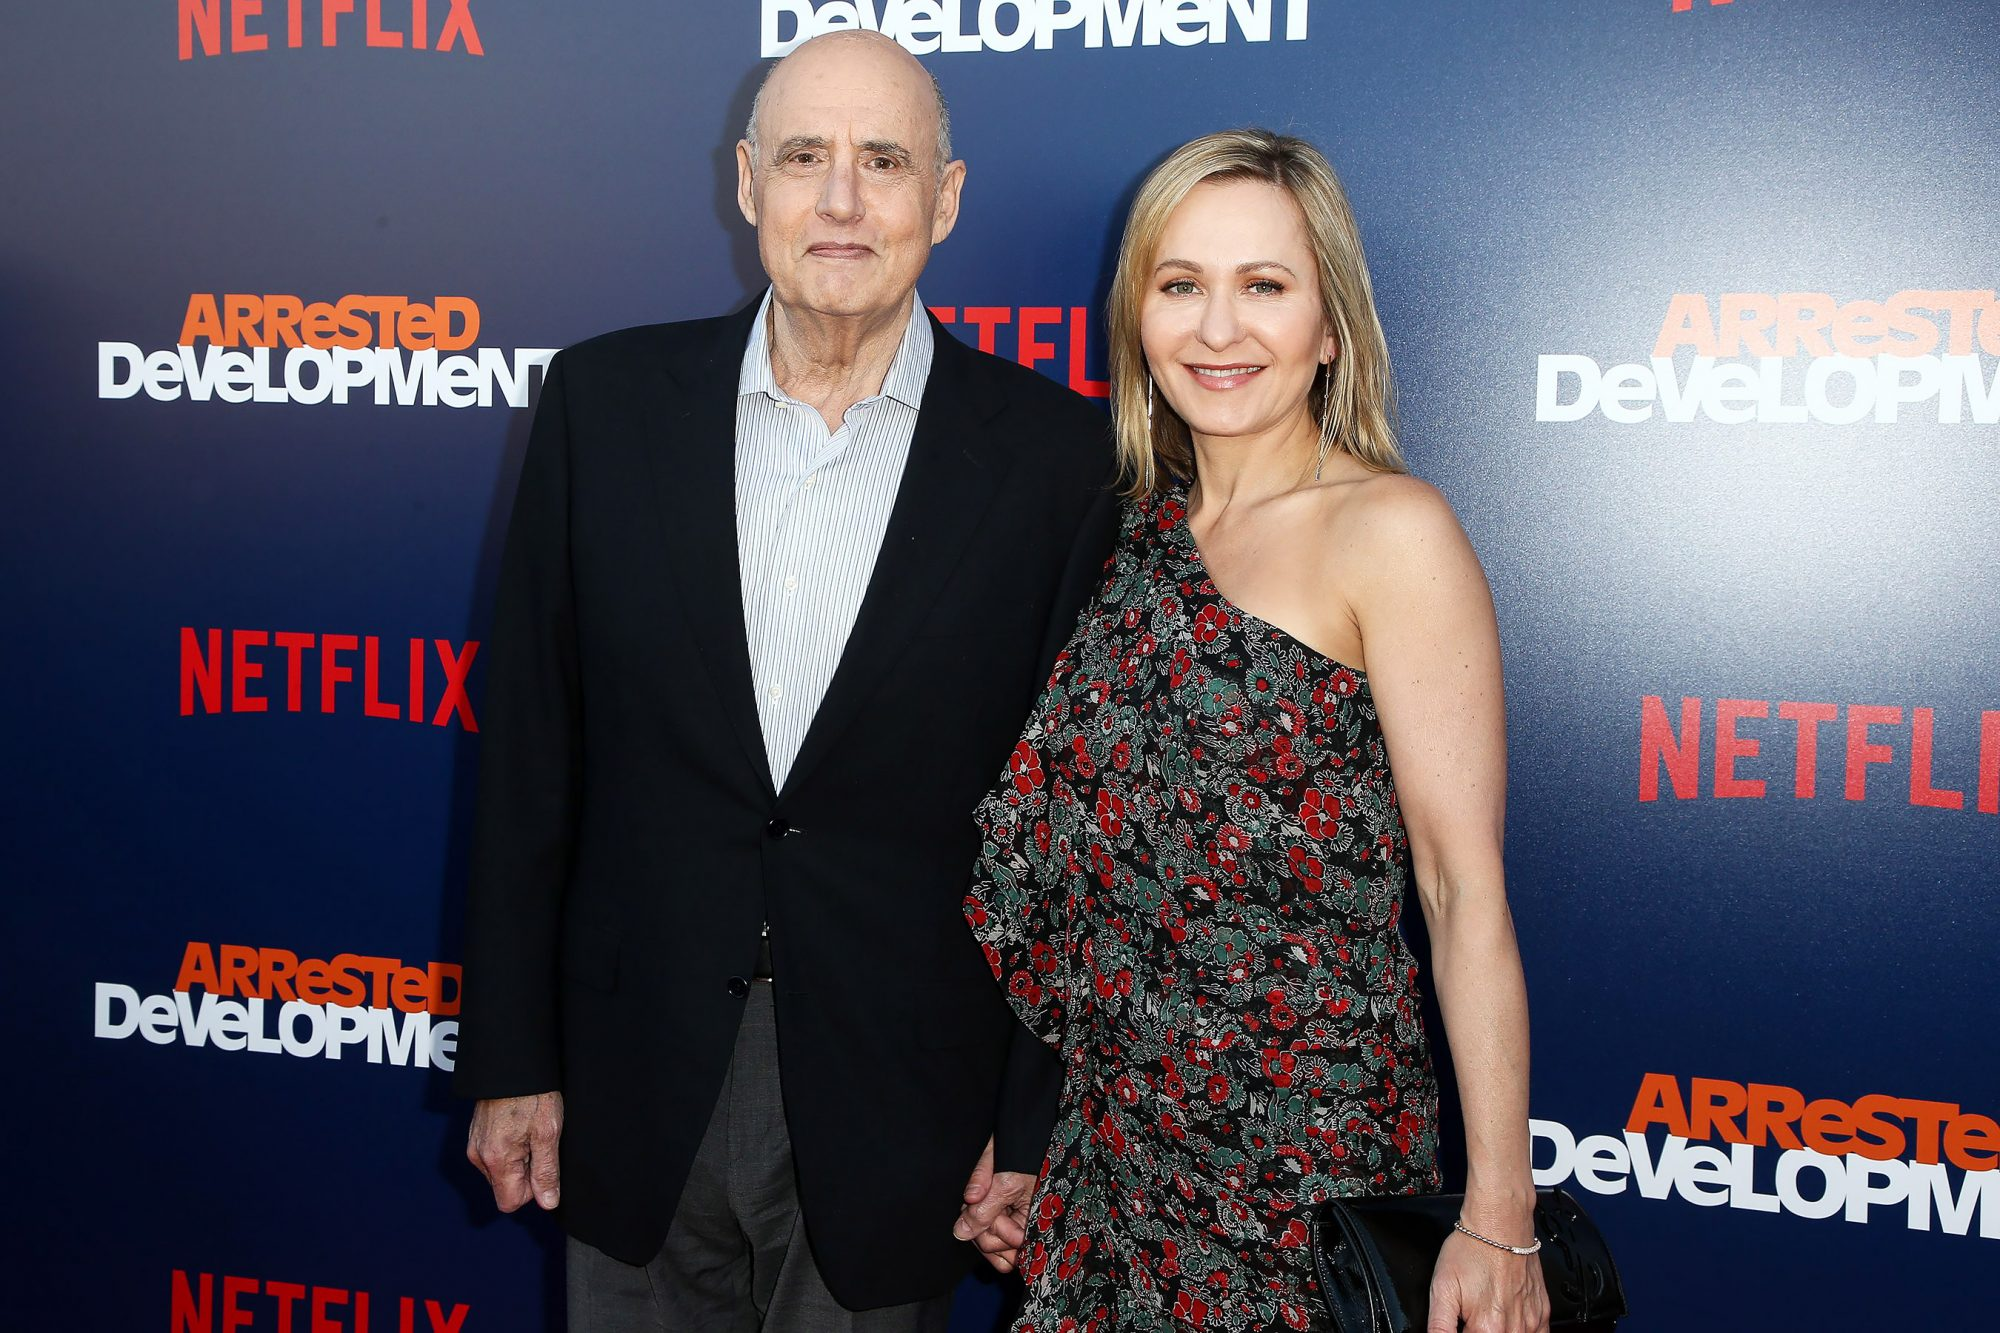 'Arrested Development' Season 5 TV show premiere, Los Angeles, USA - 17 May 2018